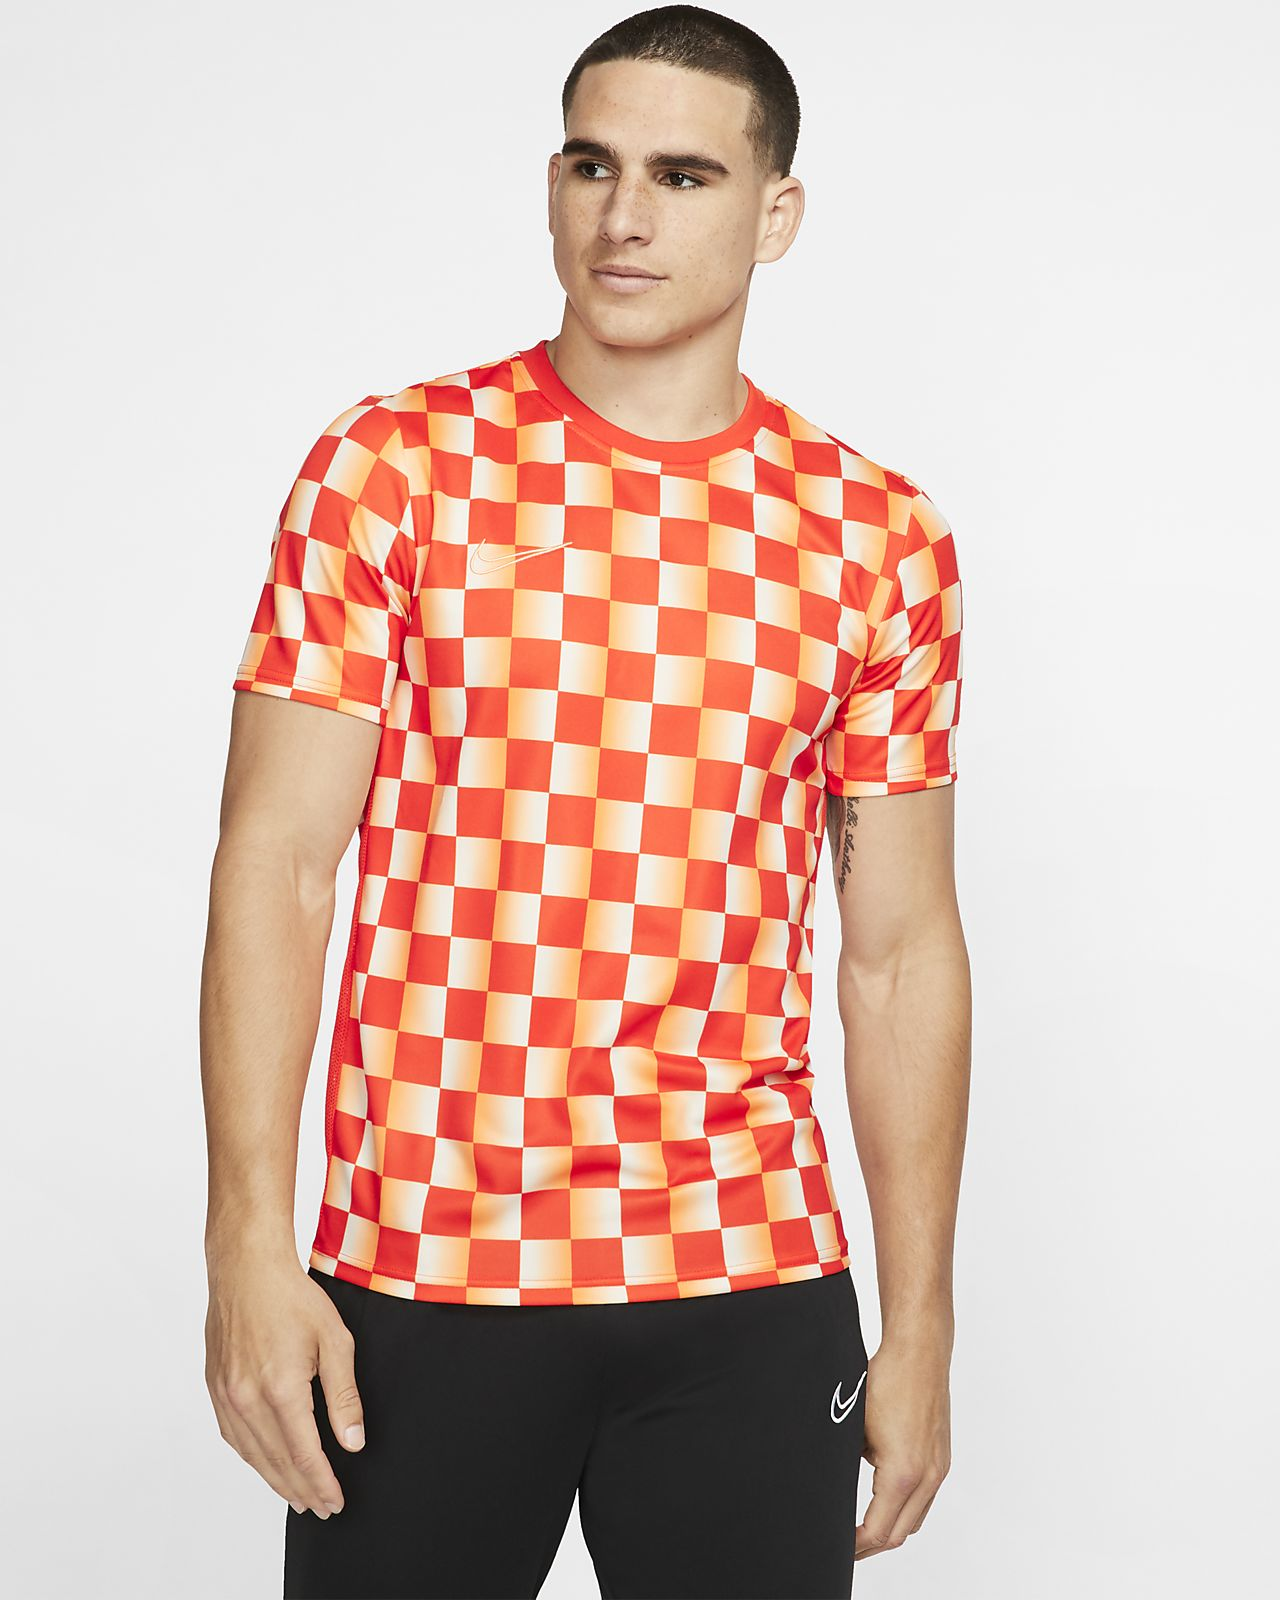 Nike Dri-FIT Academy Men's Printed Short-Sleeve Soccer Top